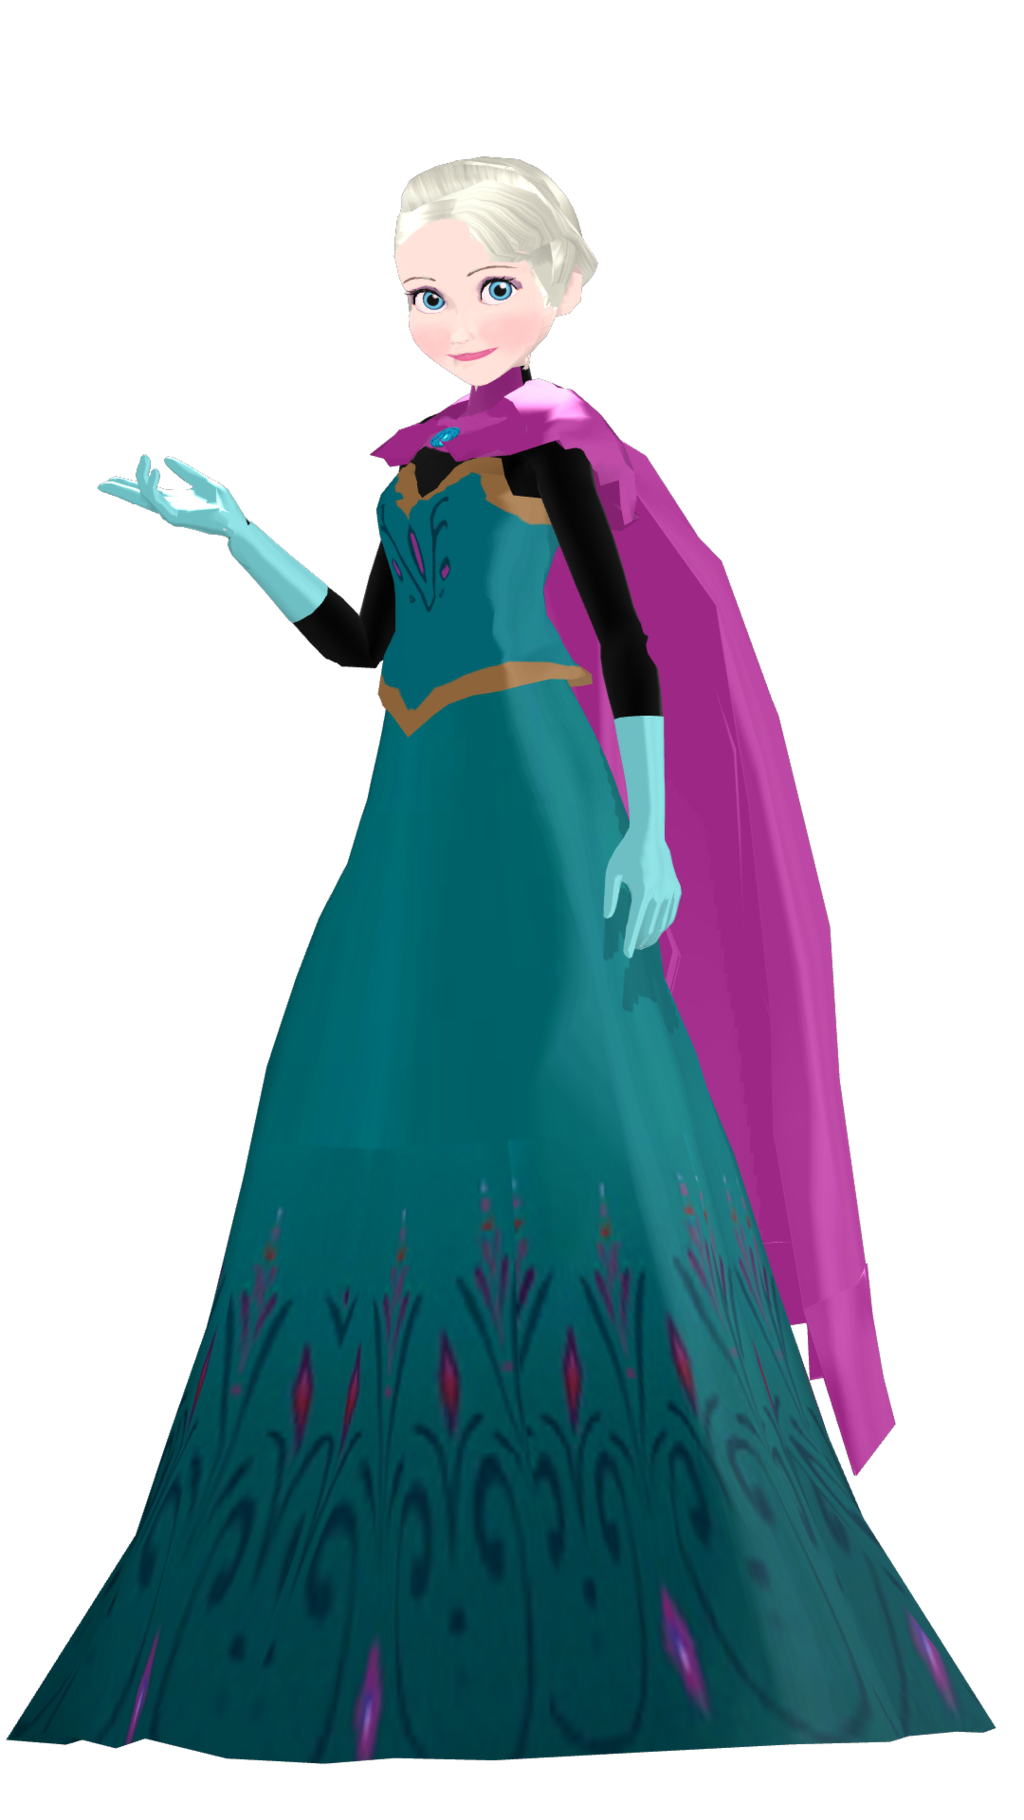 Anna Frozen Coroacao Png 6 Png Image